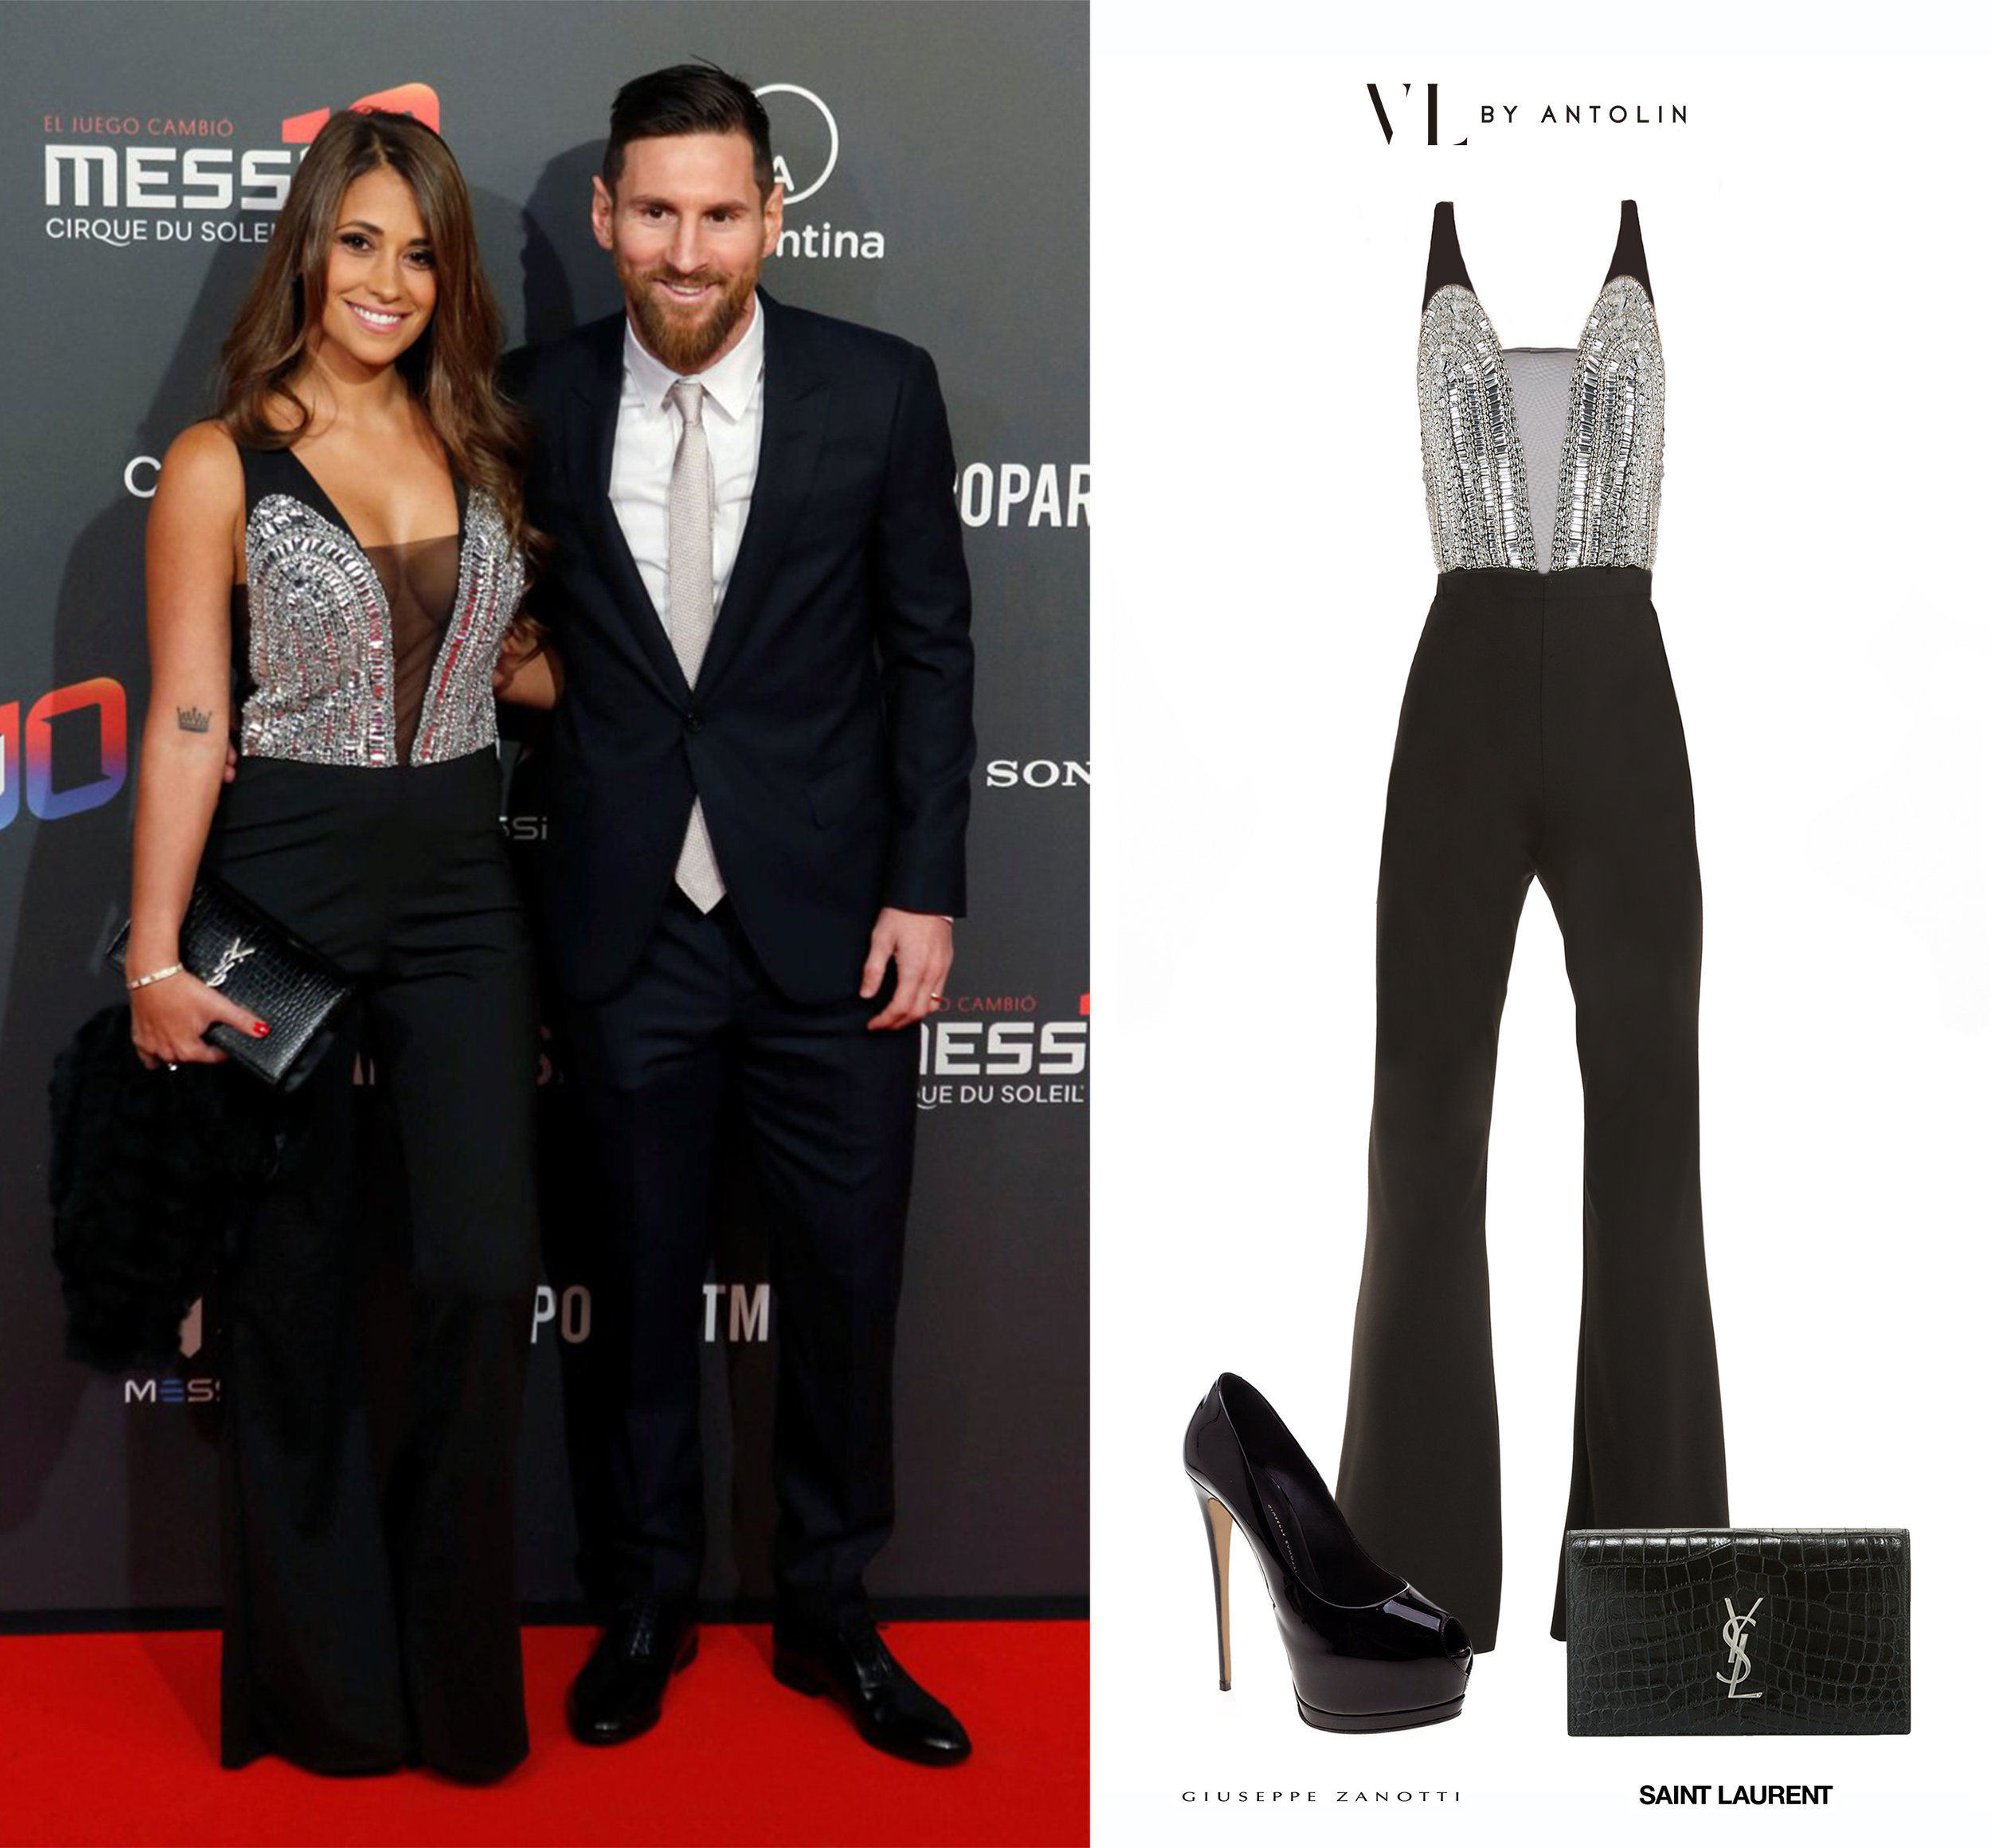 Antonella_Roccuzzo_Cirque_du_soleil_Messi_Mono_VL_by_Antolin_Cristales_Crystals_Verbena_Jumpsuit_Giuseppe_Zanotti_Platform_Peep_Toe_Patent_Leather_Saint_Laurent_YSL_Shoes_Zapatos_Crocodile_Croco_Clutch_Cartera_Lionel_Leonel_Messi.jpg